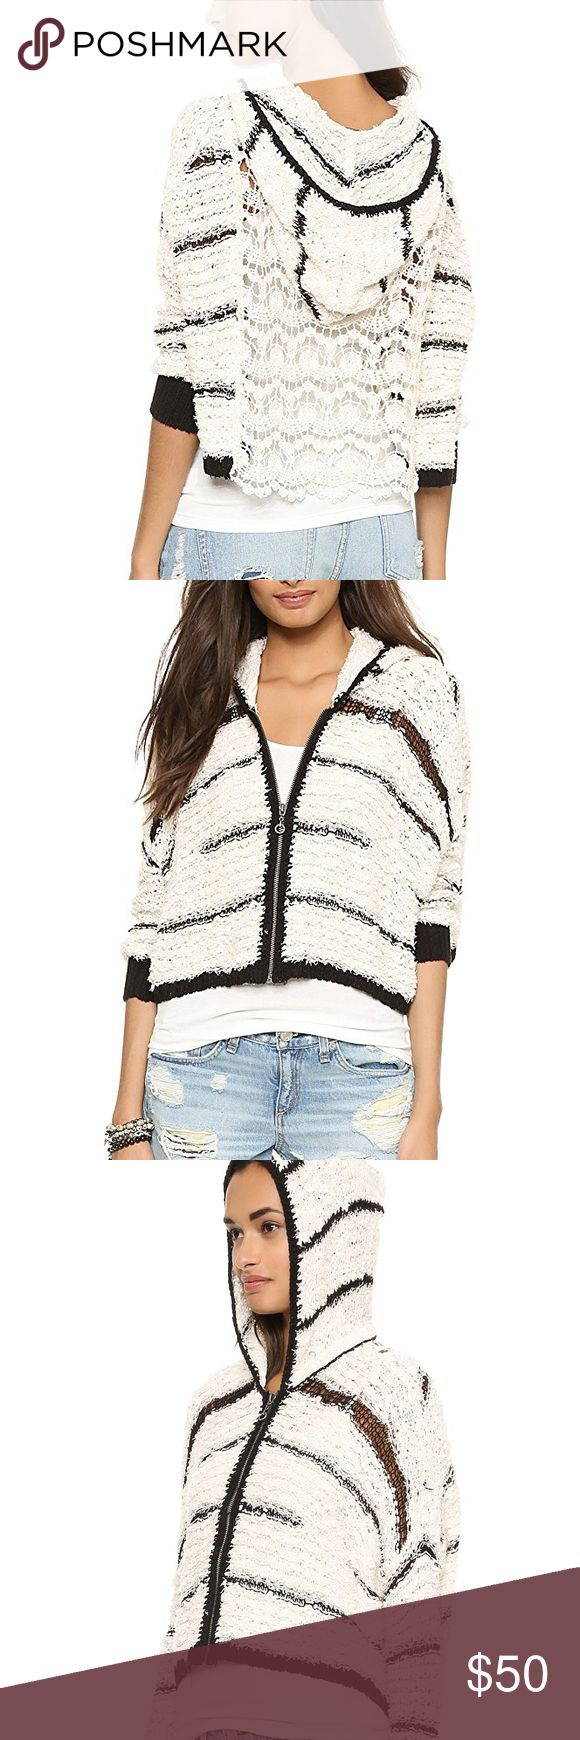 Free People Cecilia Hoodie Awesome zip up Cecilia hoodie by Free People. Ivory Combo colorway. Crochet back detail. Minor fuzzies as pictured, but overall in great condition. Make an offer or 'add to bundle' and I will send you a private discount! ❤️ Free People Tops Sweatshirts & Hoodies